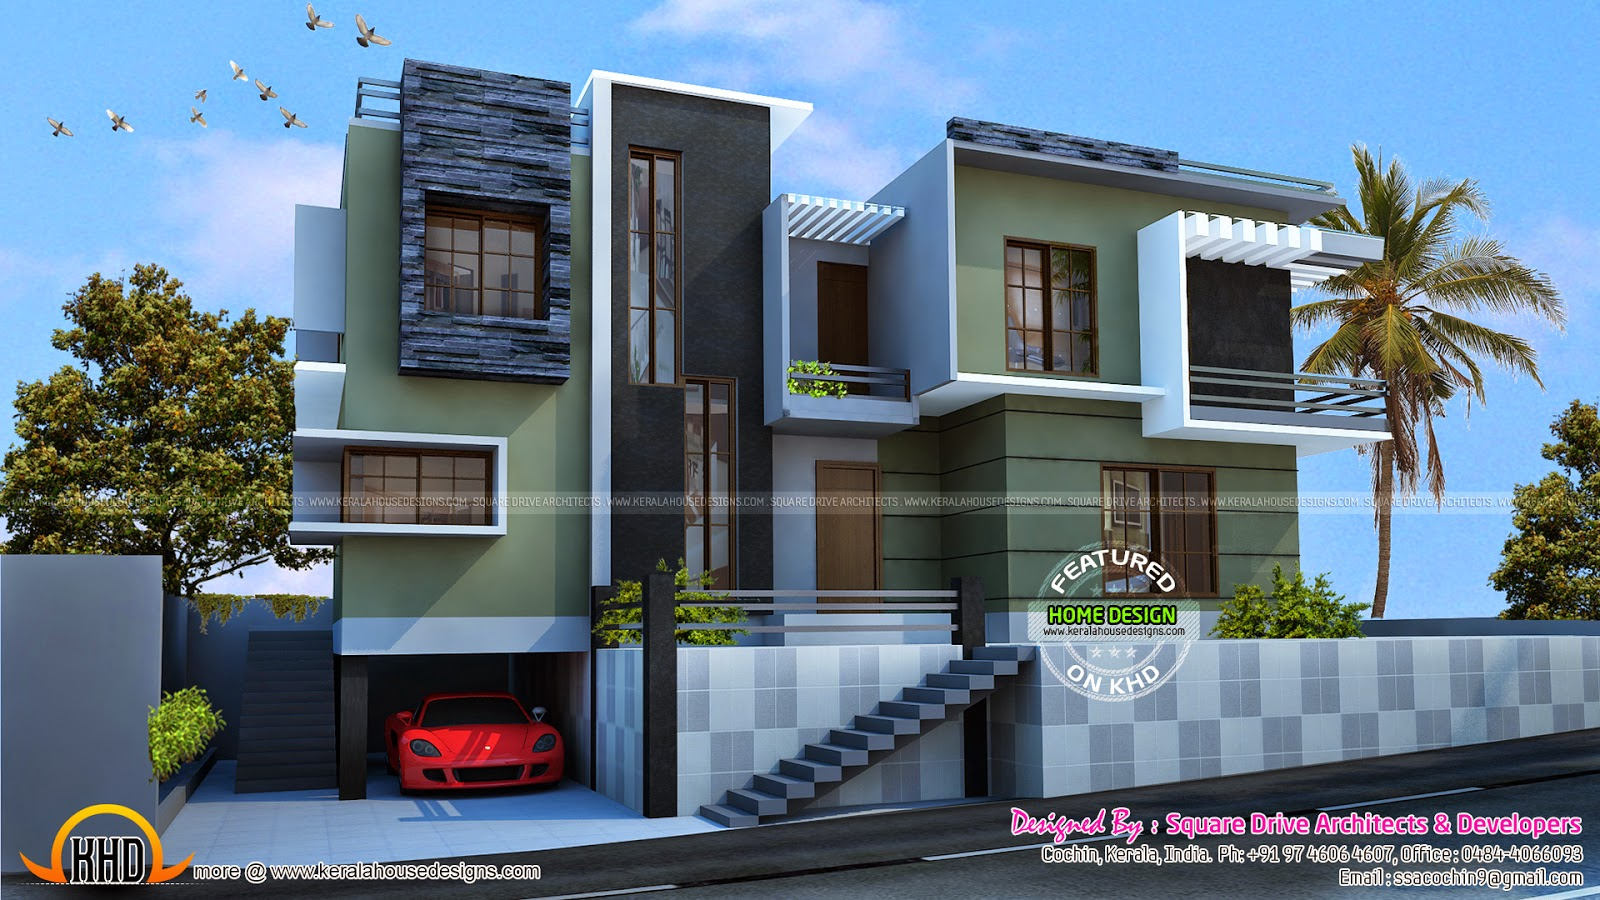 modern duplex house kerala home design and floor plans. Black Bedroom Furniture Sets. Home Design Ideas